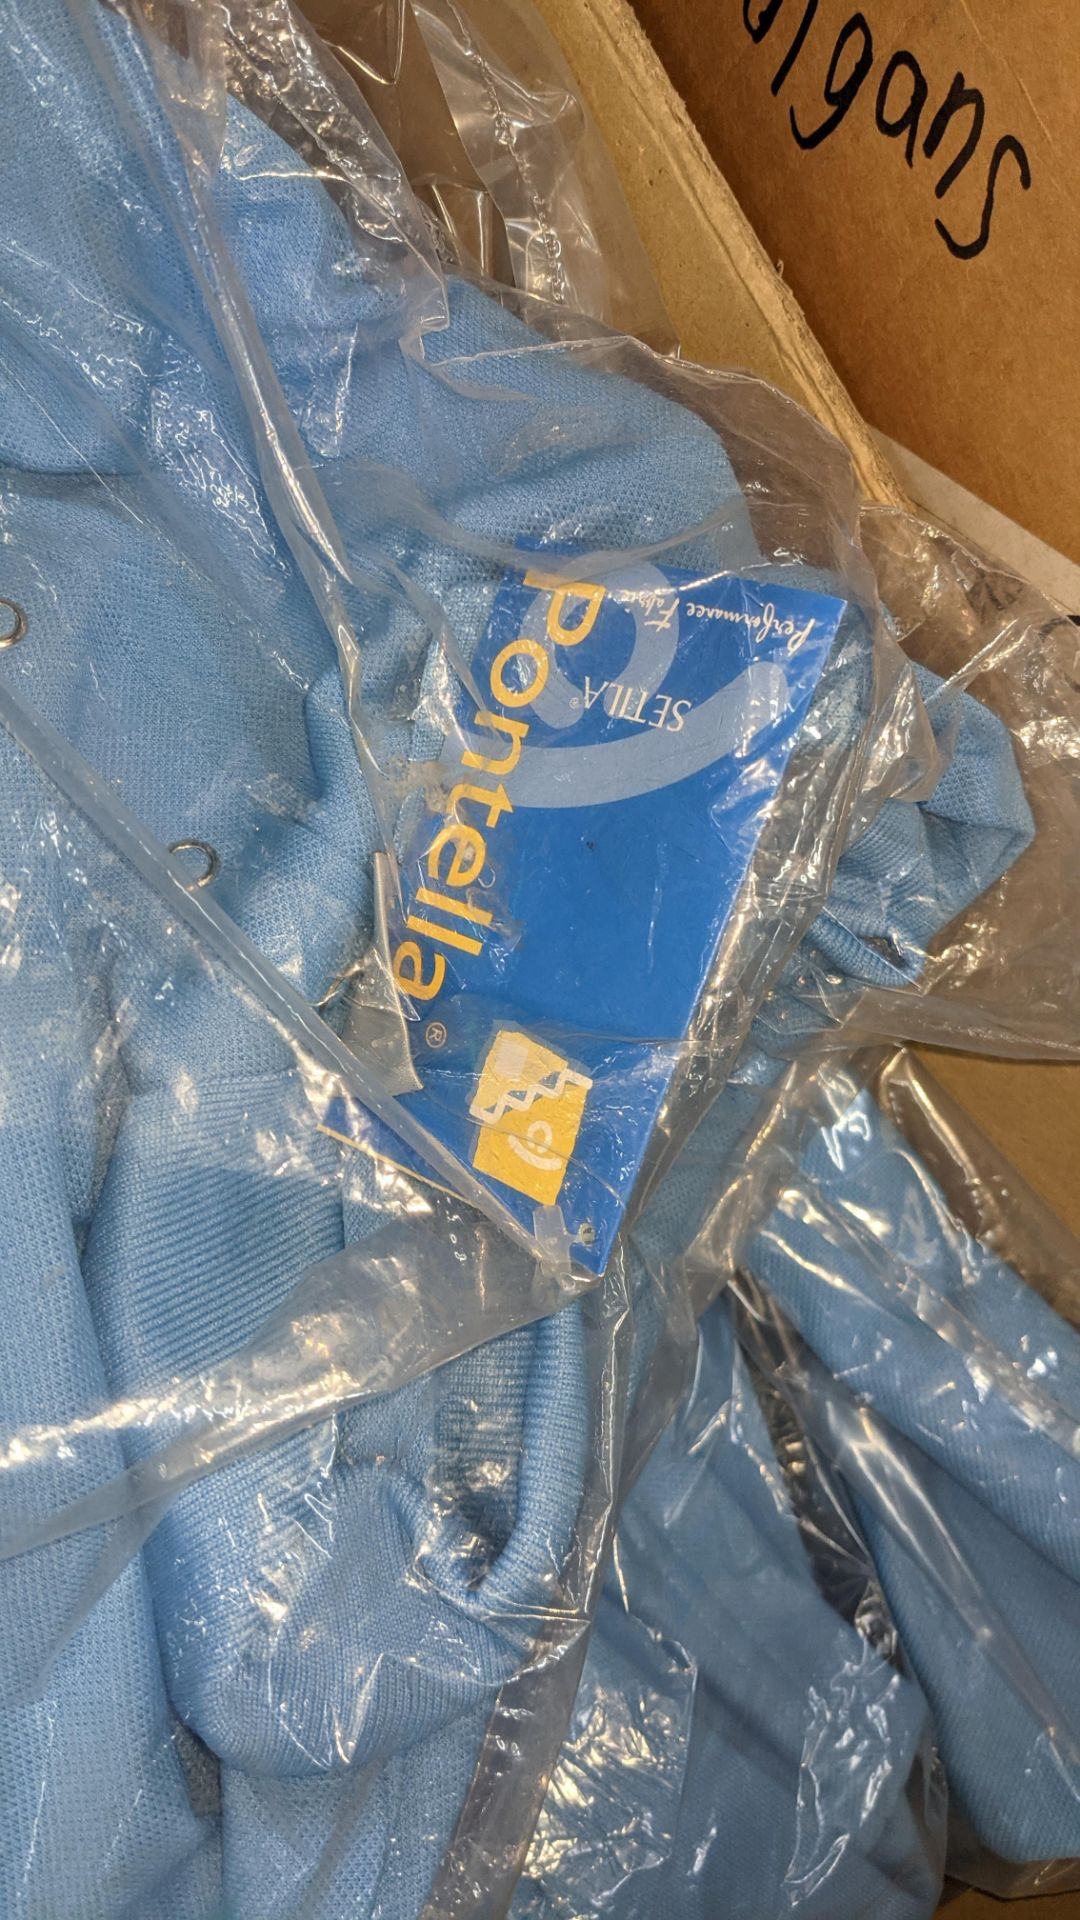 Approx 10 off pale blue polo shirts - 1 box - Image 4 of 5